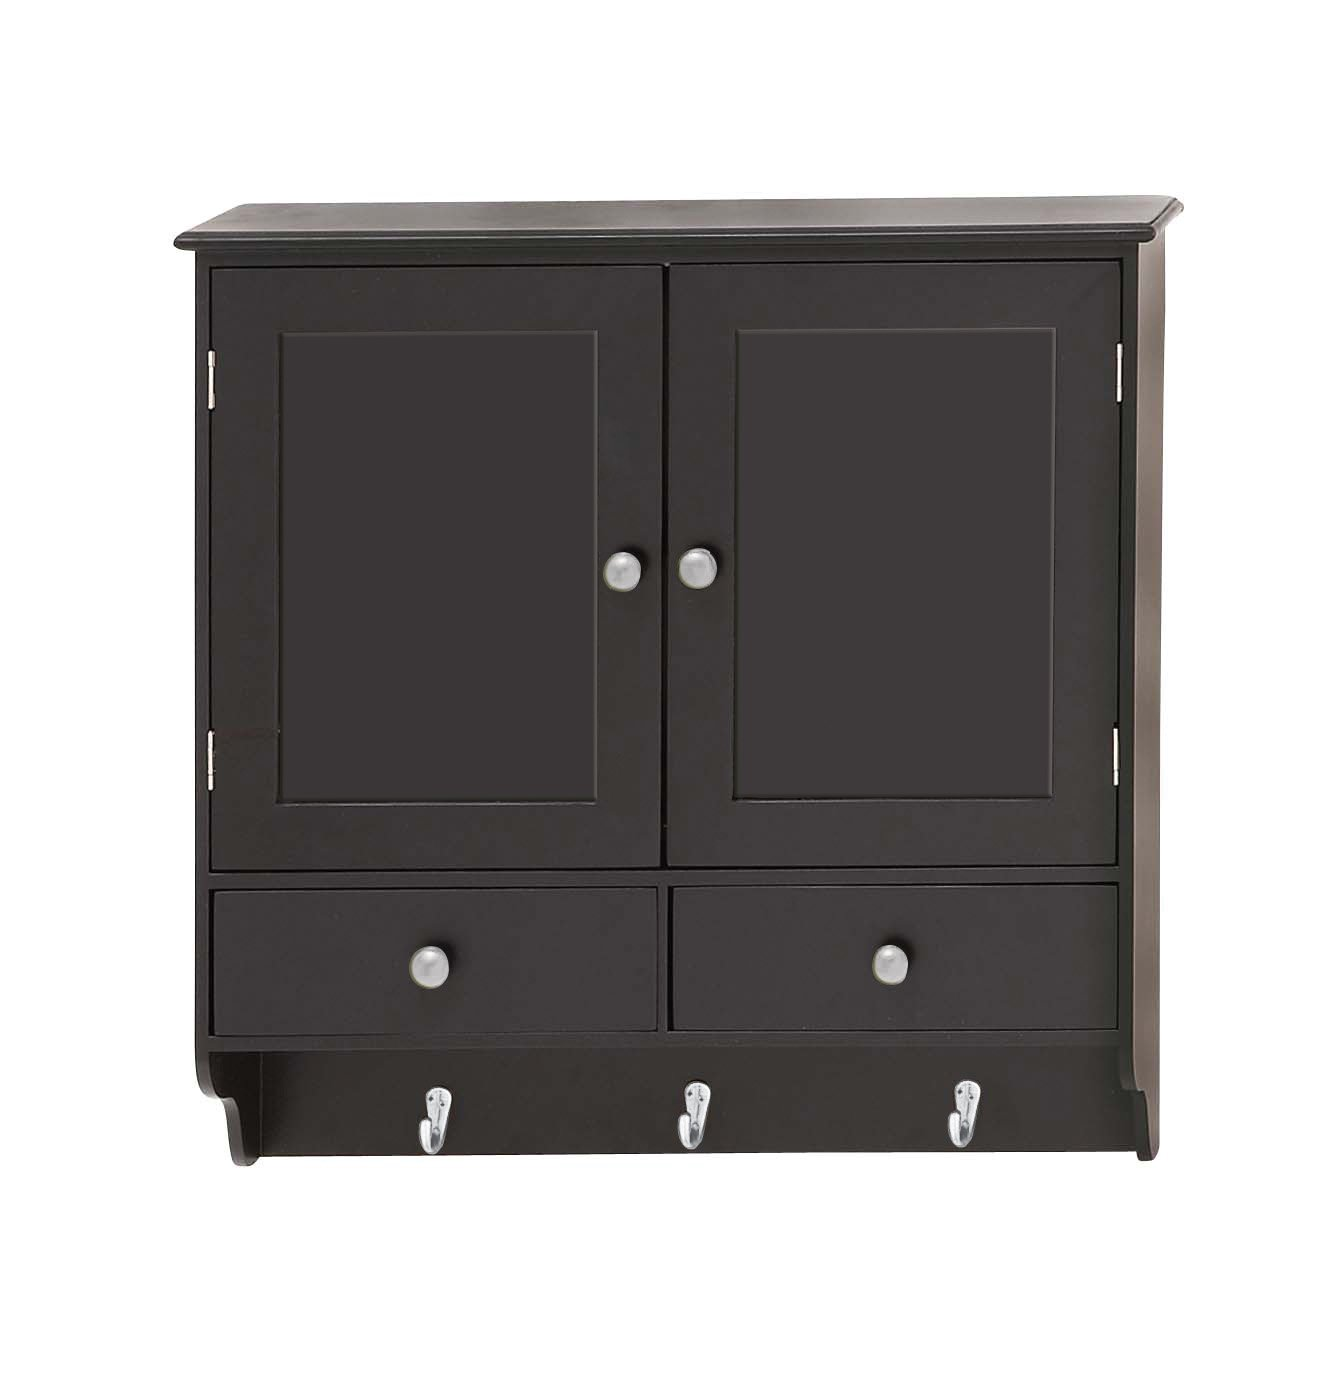 Deco 79 Attractive Wood Wall Cabinet with Hooks, 24'' W x 24'' H